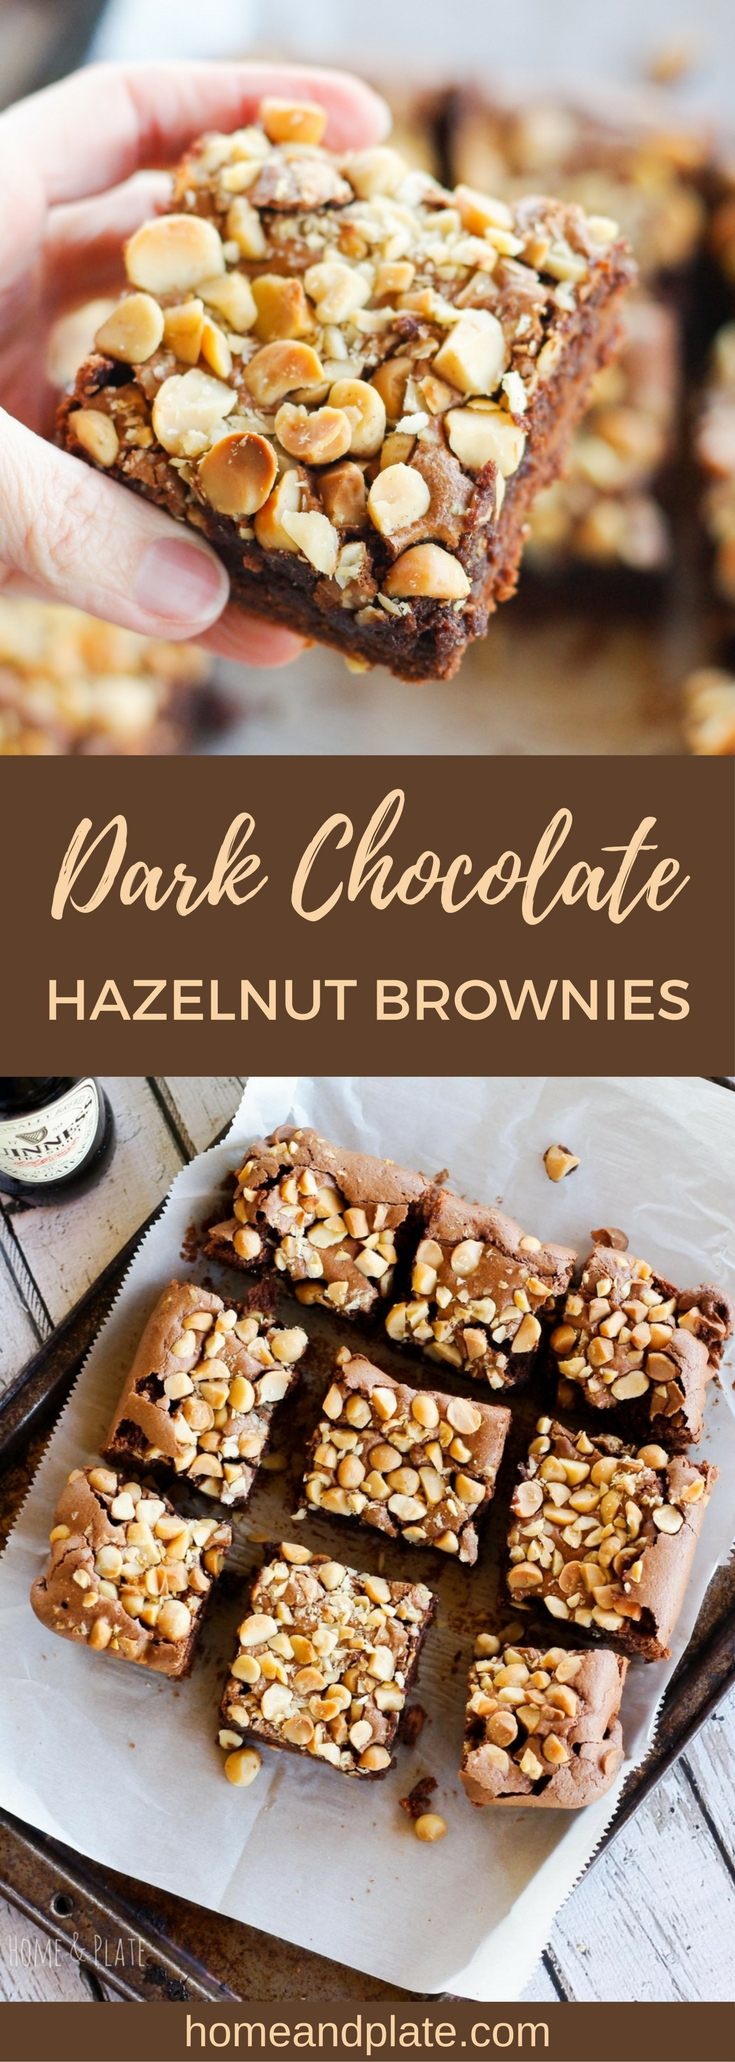 Dark Chocolate Hazelnut Brownies | www.homeandplate.com | These Dark Chocolate Hazelnut Brownies are delicious any day of the year not just St. Patrick's Day. They feature a secret ingredient - Guinness beer!